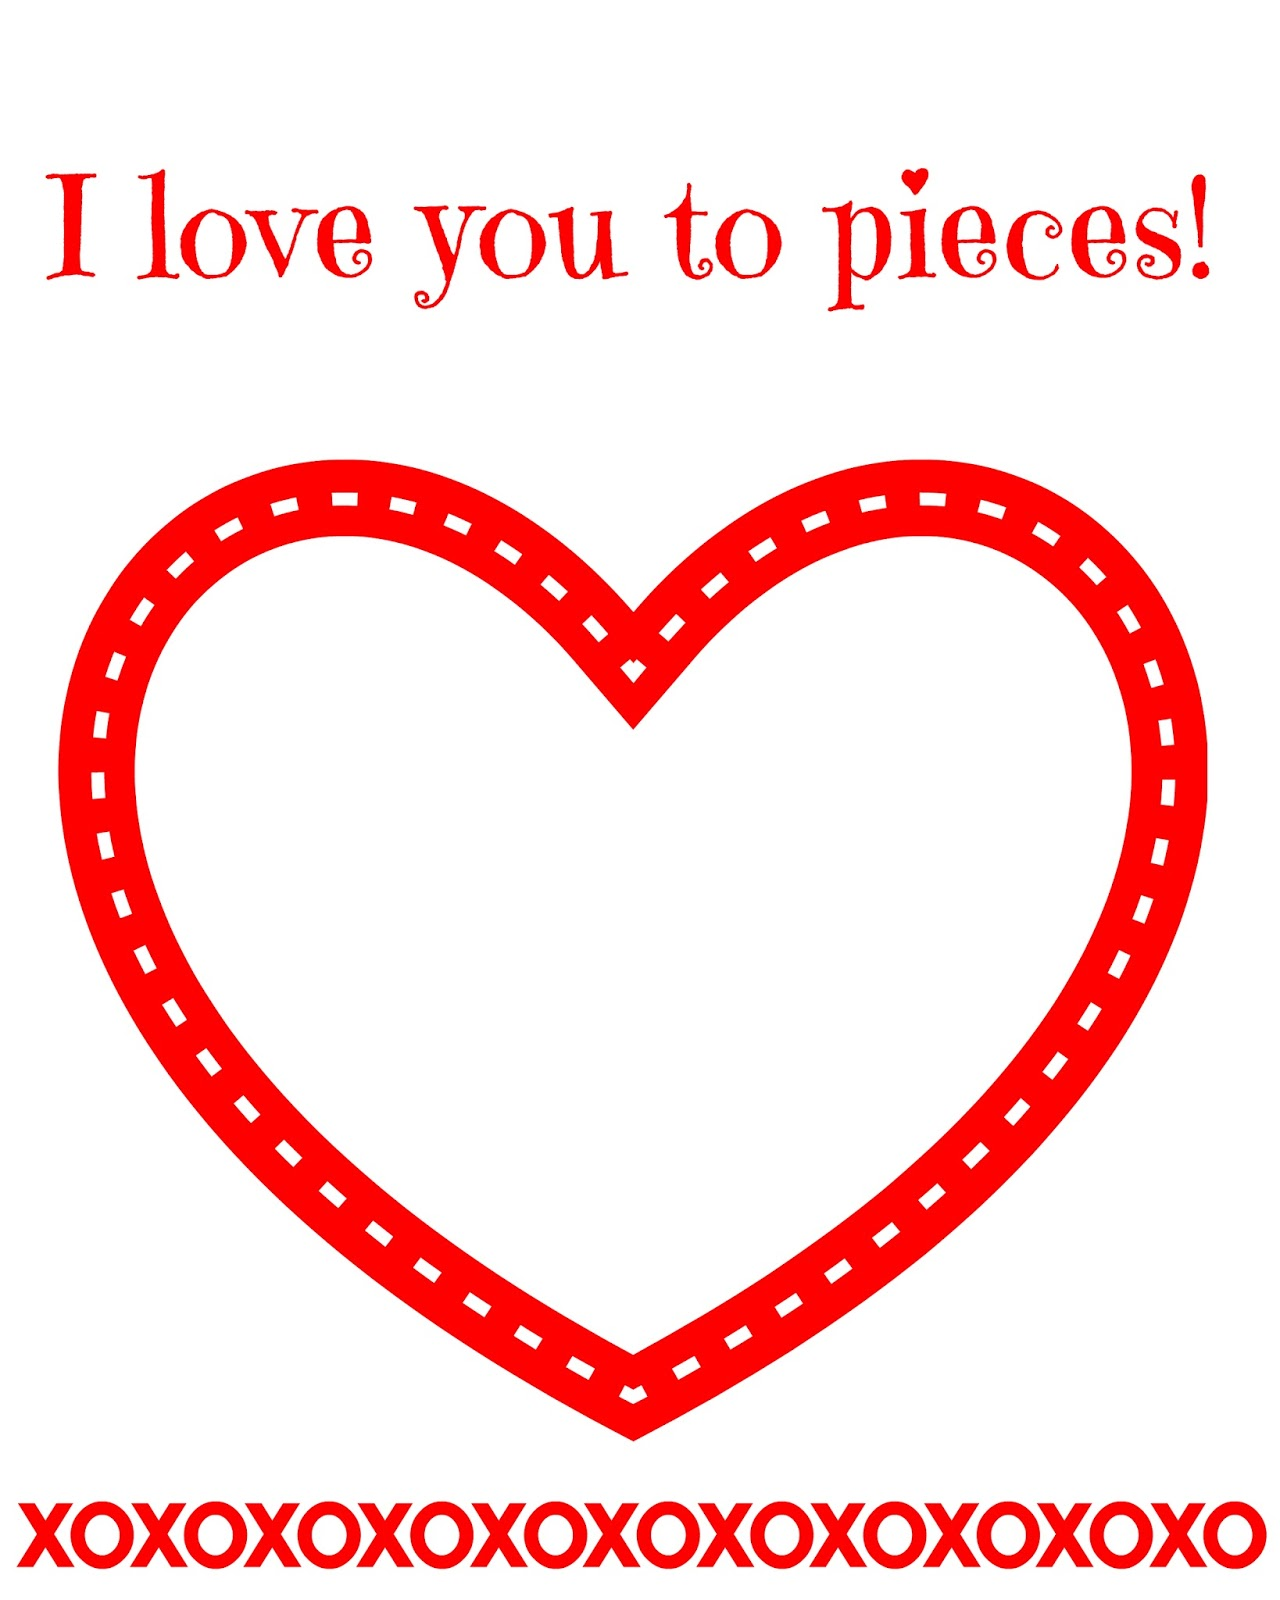 Simple valentine crafts for toddlers - Then Have The Child Rip Bits Of Construction Paper And Glue Them To The Heart This Is A Fantastic And Simple Valentine That Kids Can Make For Someone